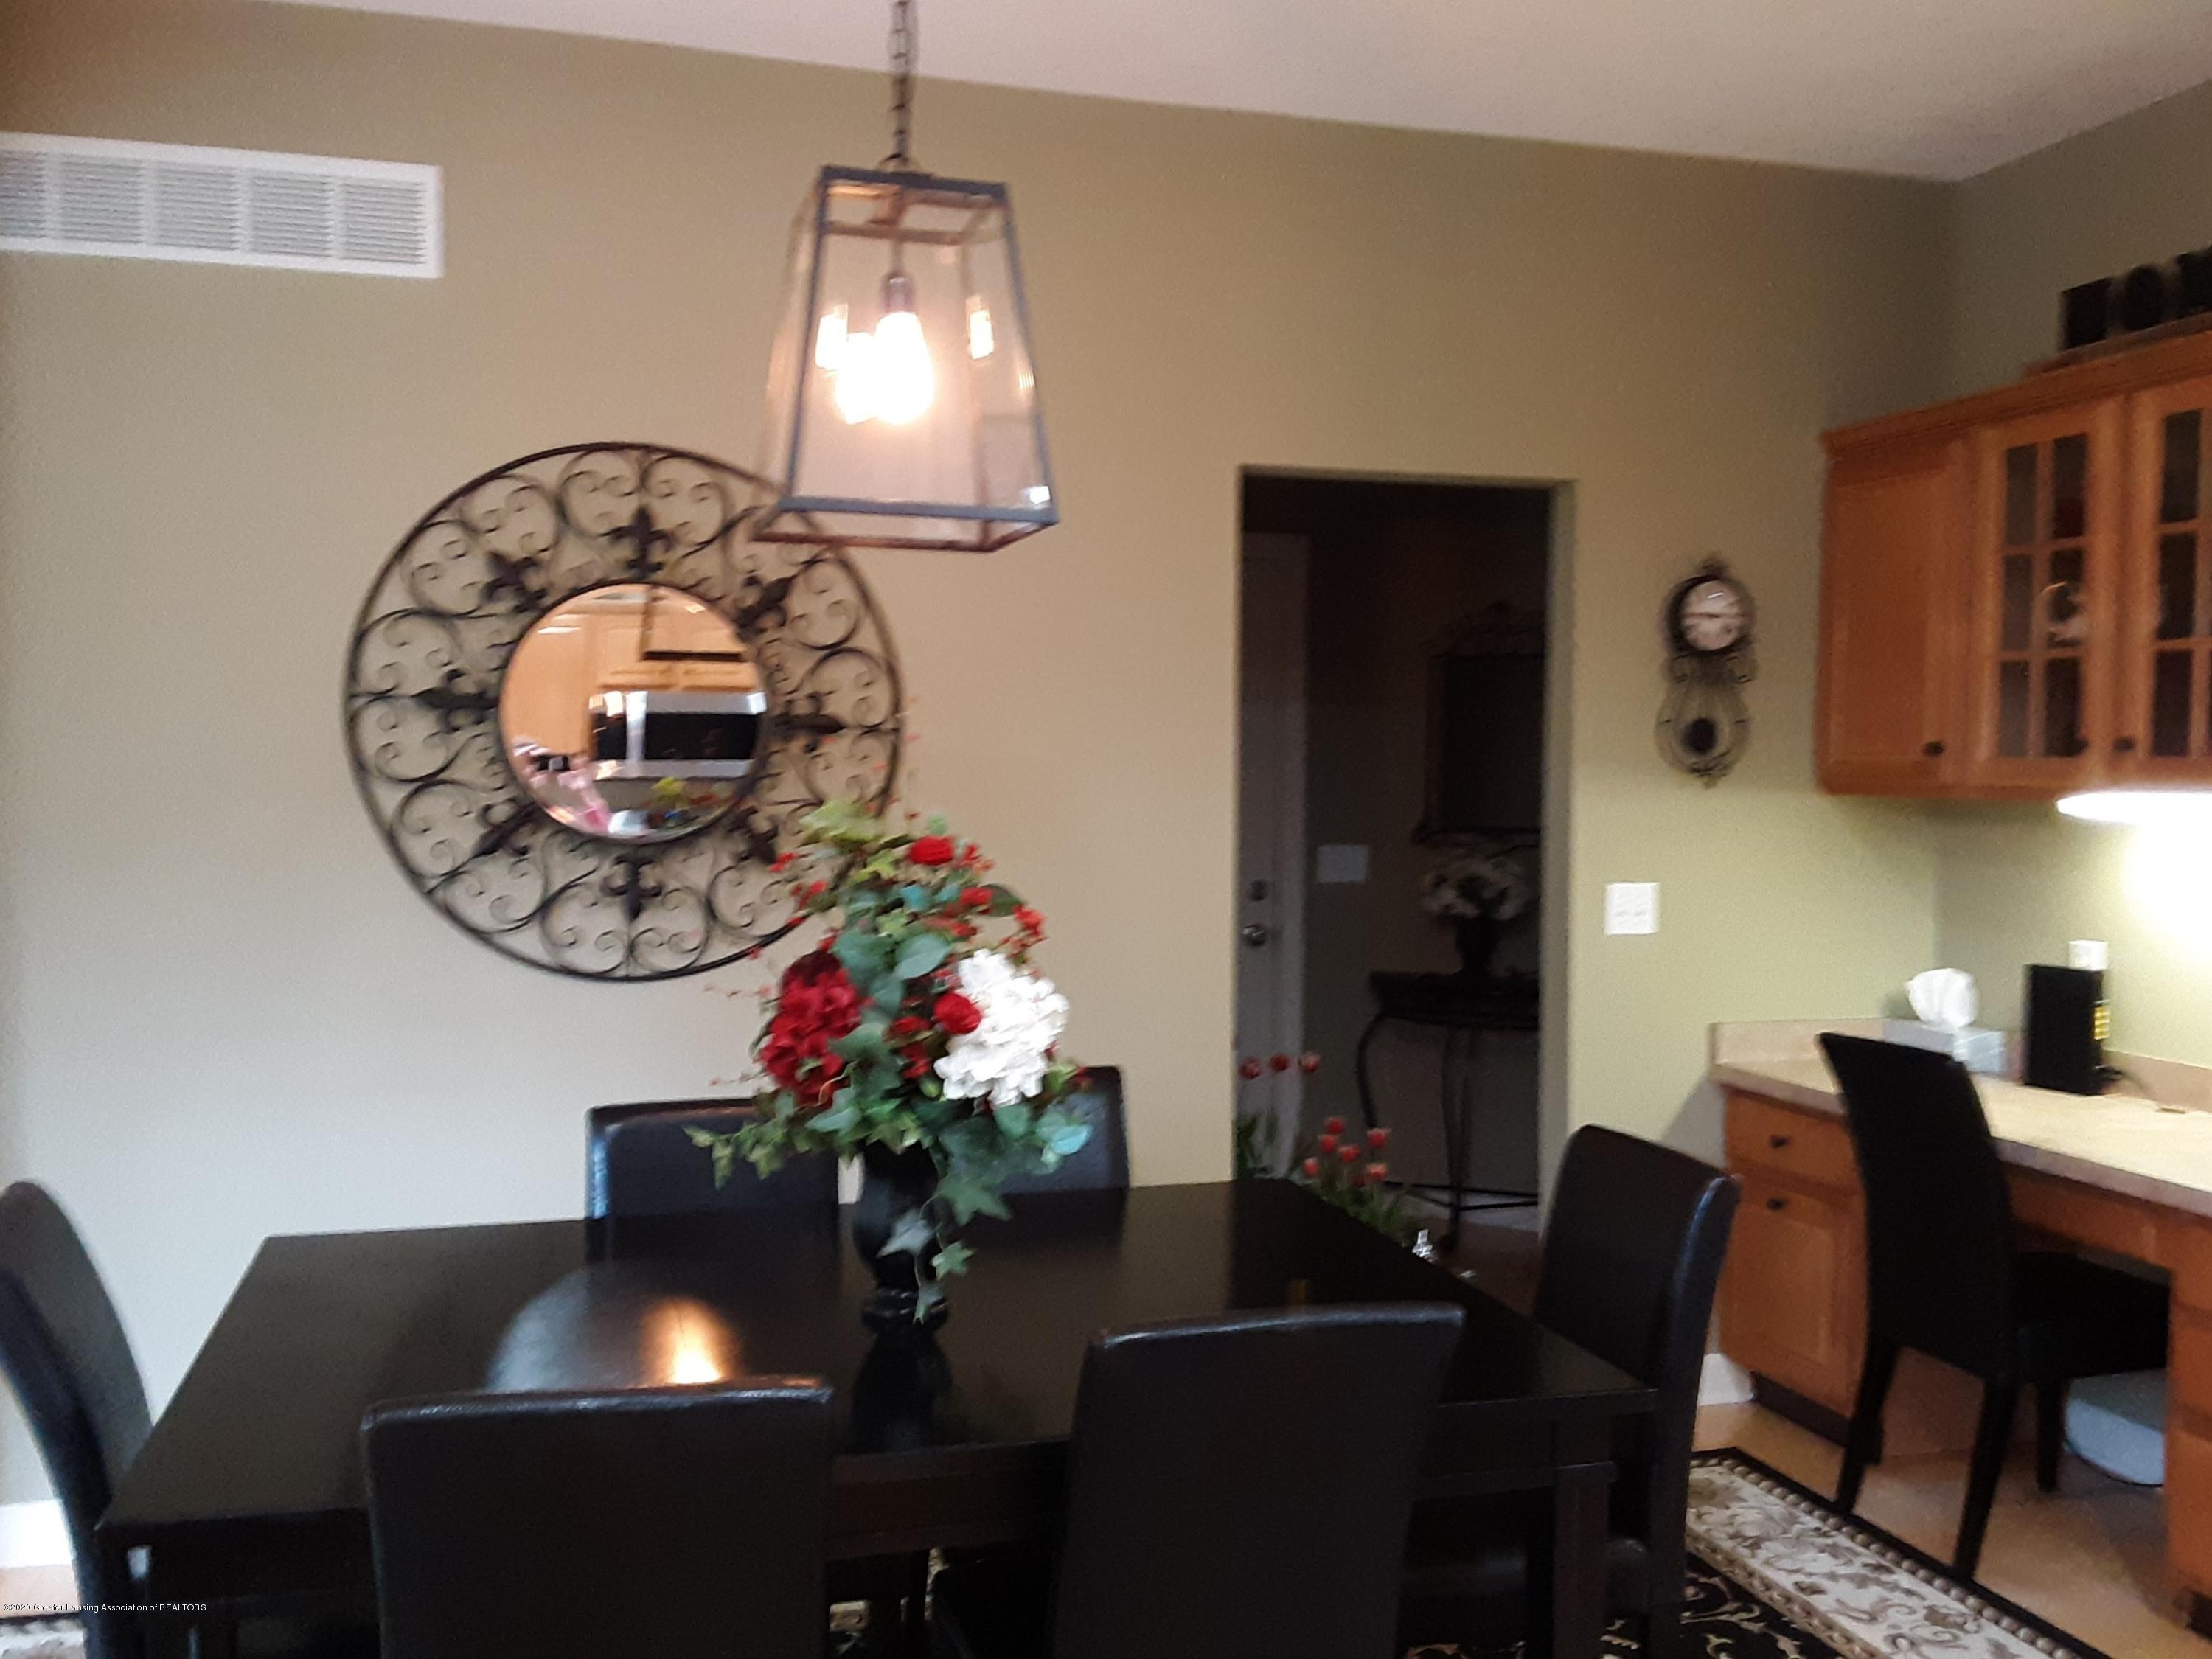 13142 Blaisdell Dr - 11. Informal Dining from Kitchen view - 12